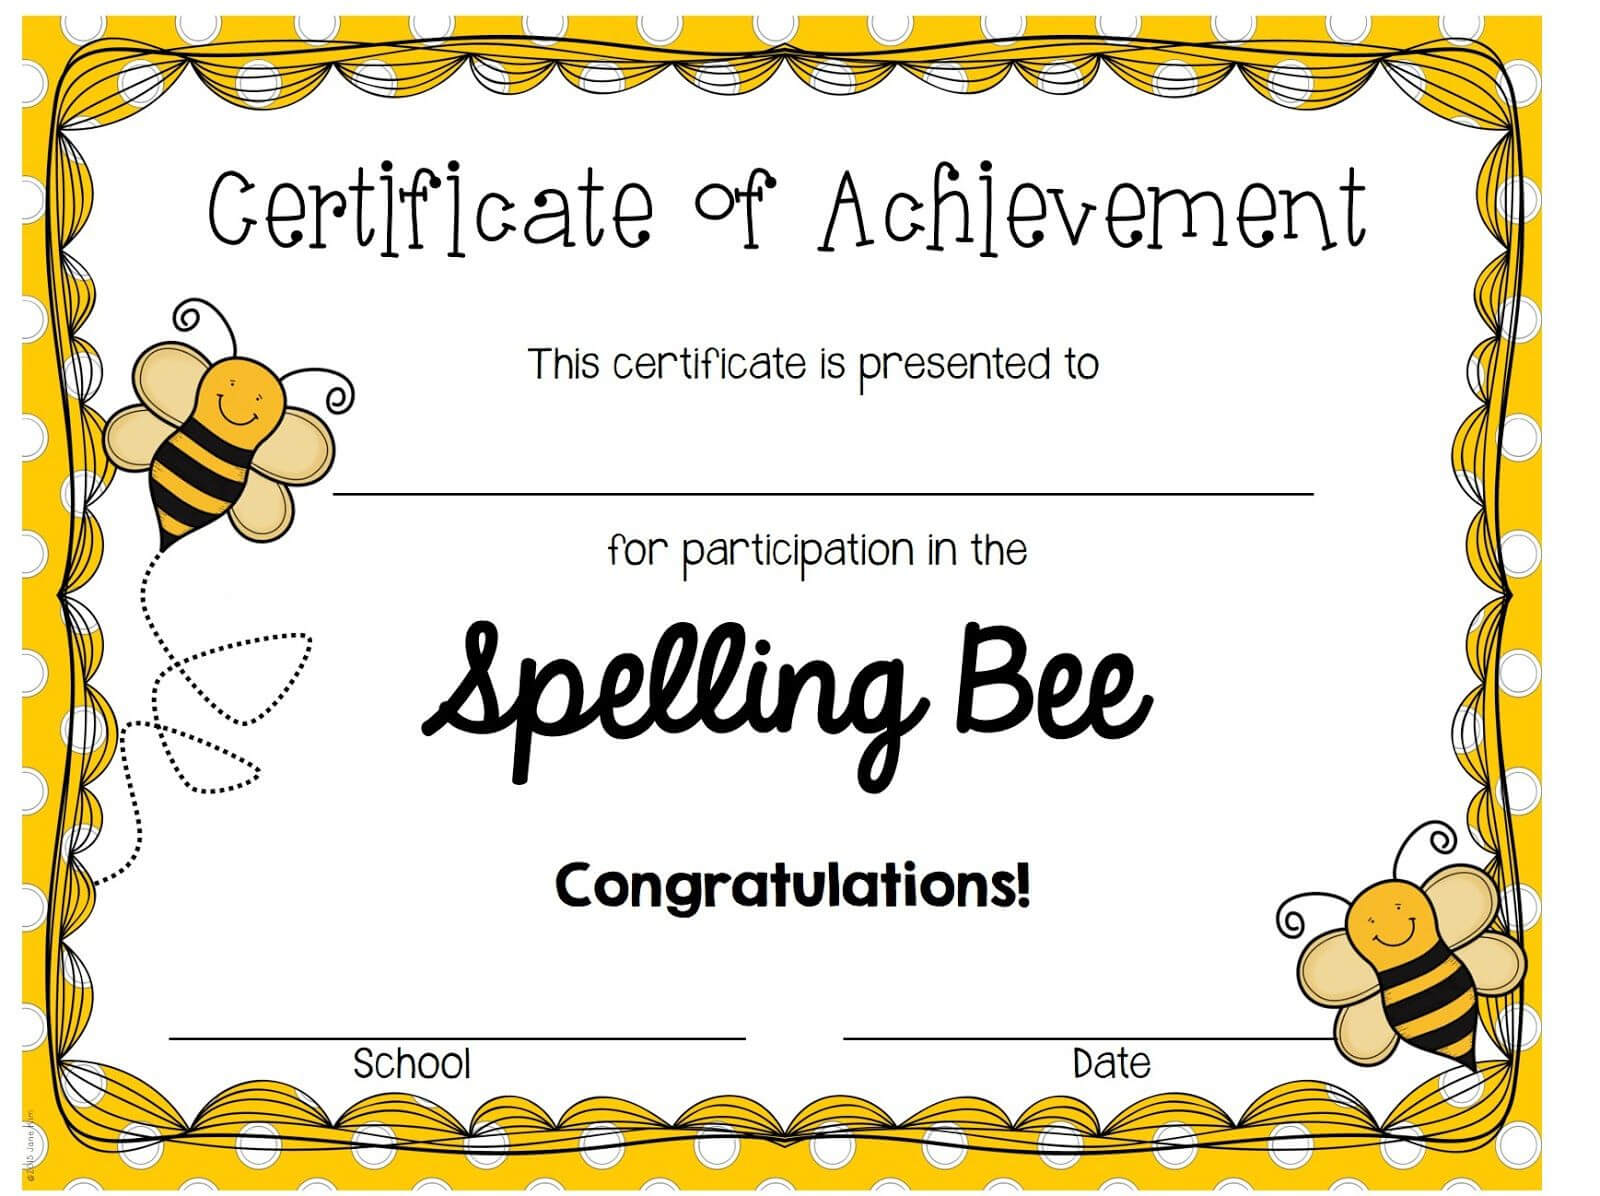 Imagine That!: Search Results For Spelling Bee | Spelling Intended For Spelling Bee Award Certificate Template